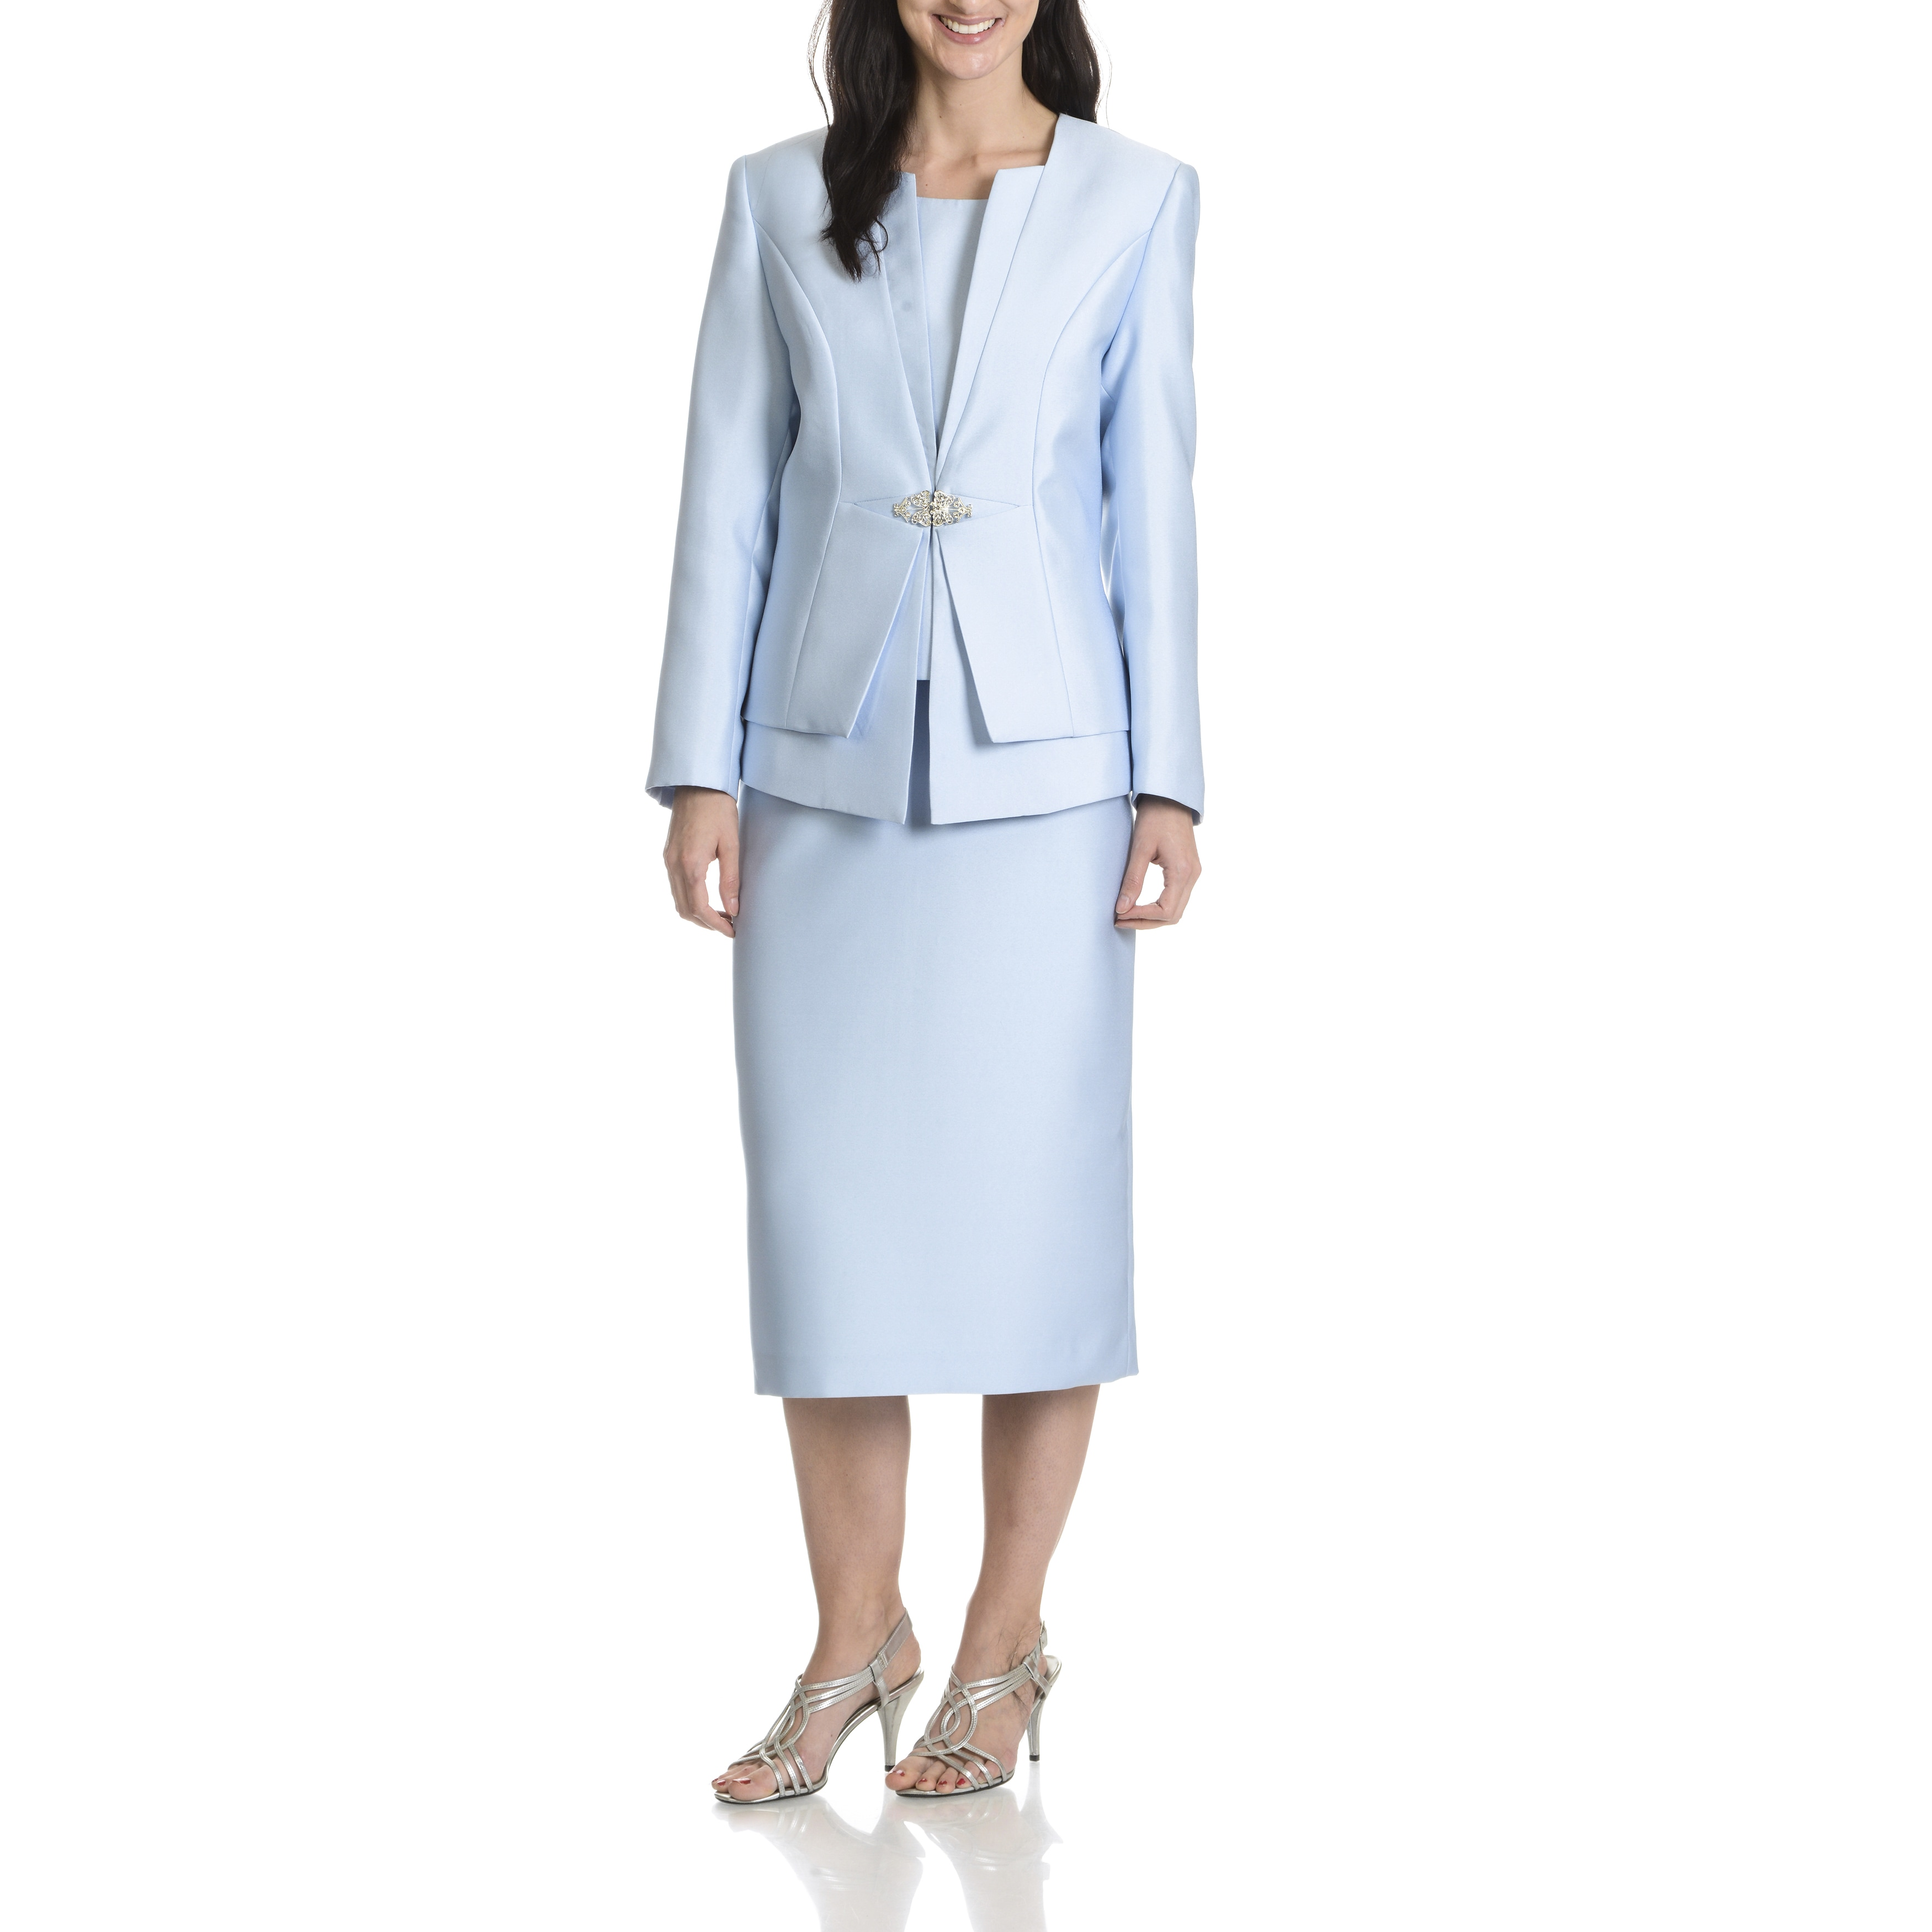 Giovanni Giovanna Collection Women's Layered 3-Piece Skir...